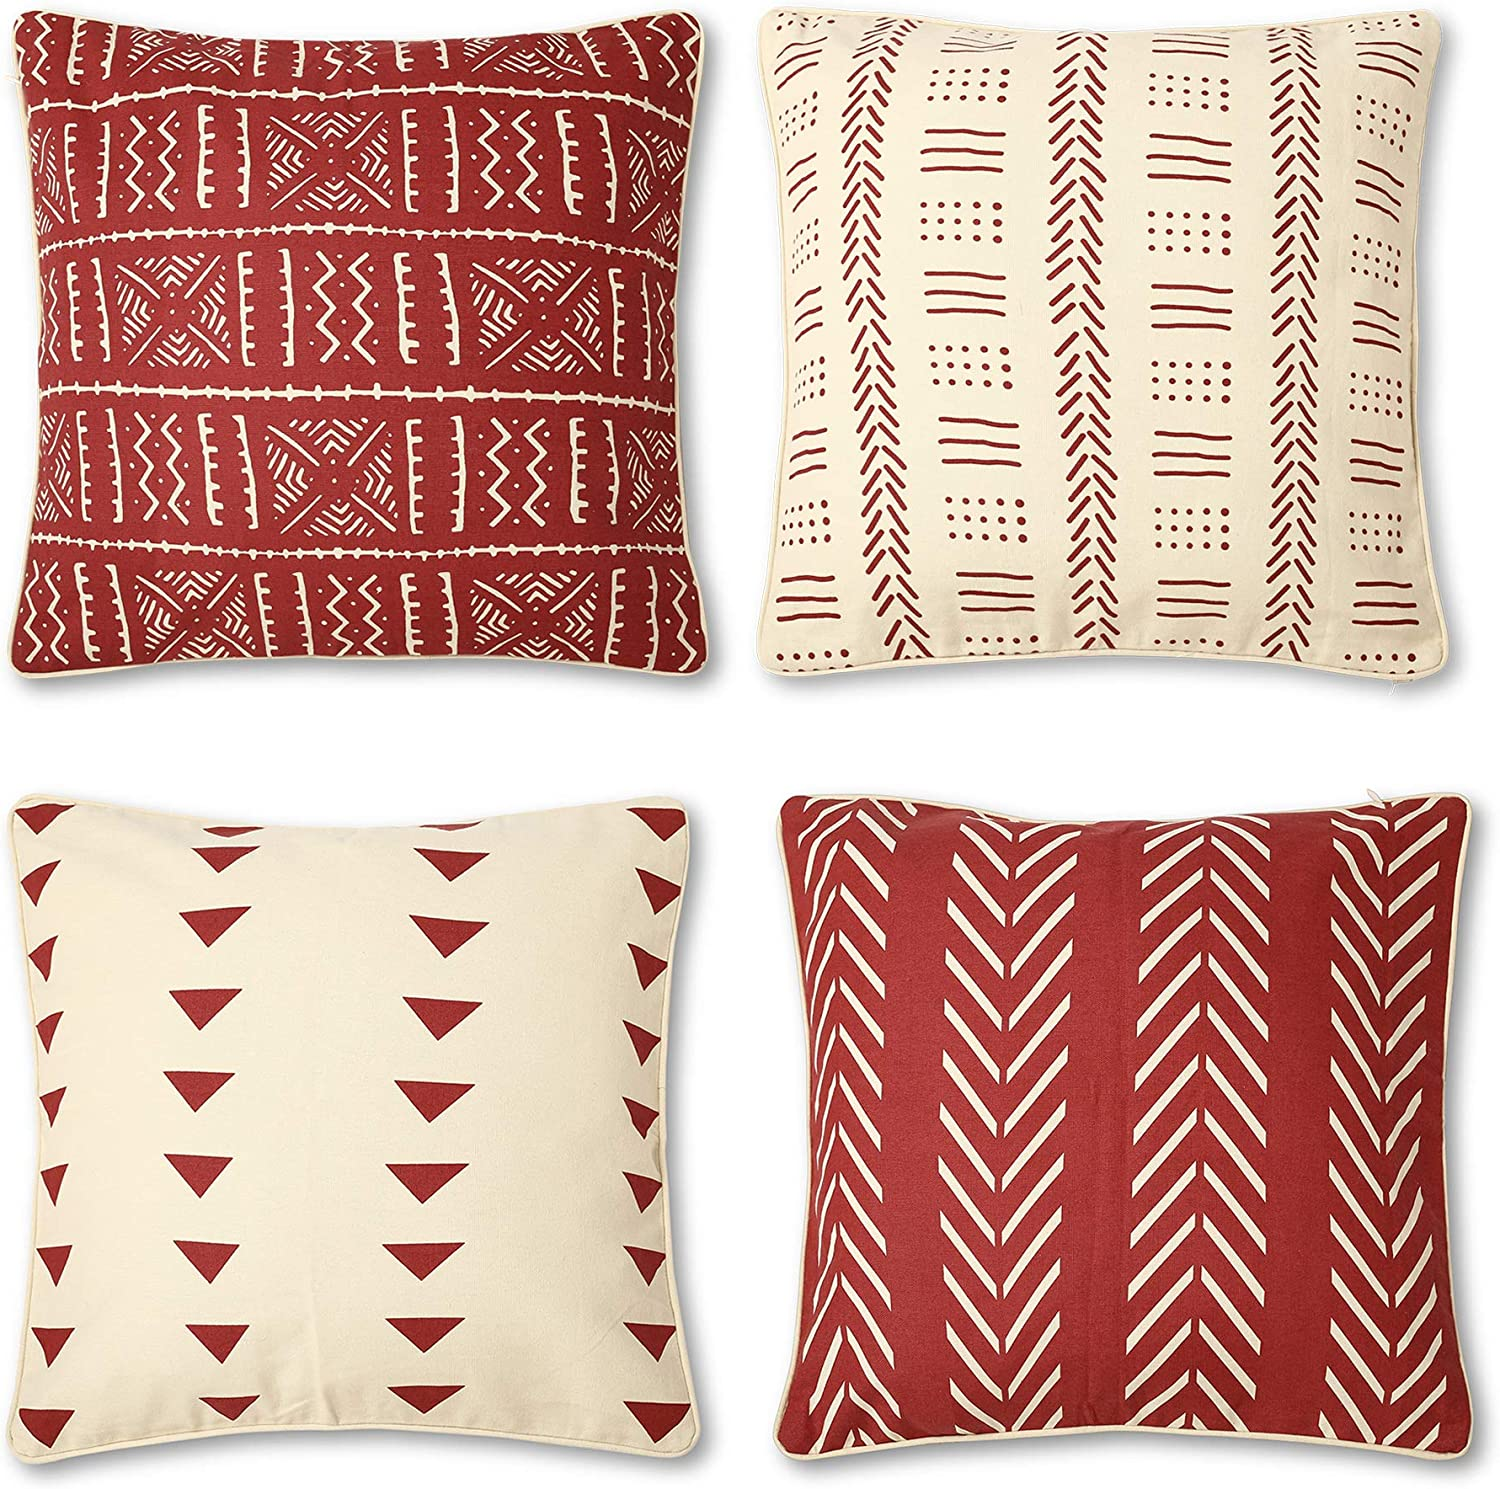 REDEARTH Printed Throw Pillow Cushion Covers-Woven Decorative Farmhouse Cases Set for Couch, Sofa, Bed, Farmhouse, Chair, Dining, Patio, Outdoor, car; 100% Cotton (18x18; Deep Red) Pack of 4